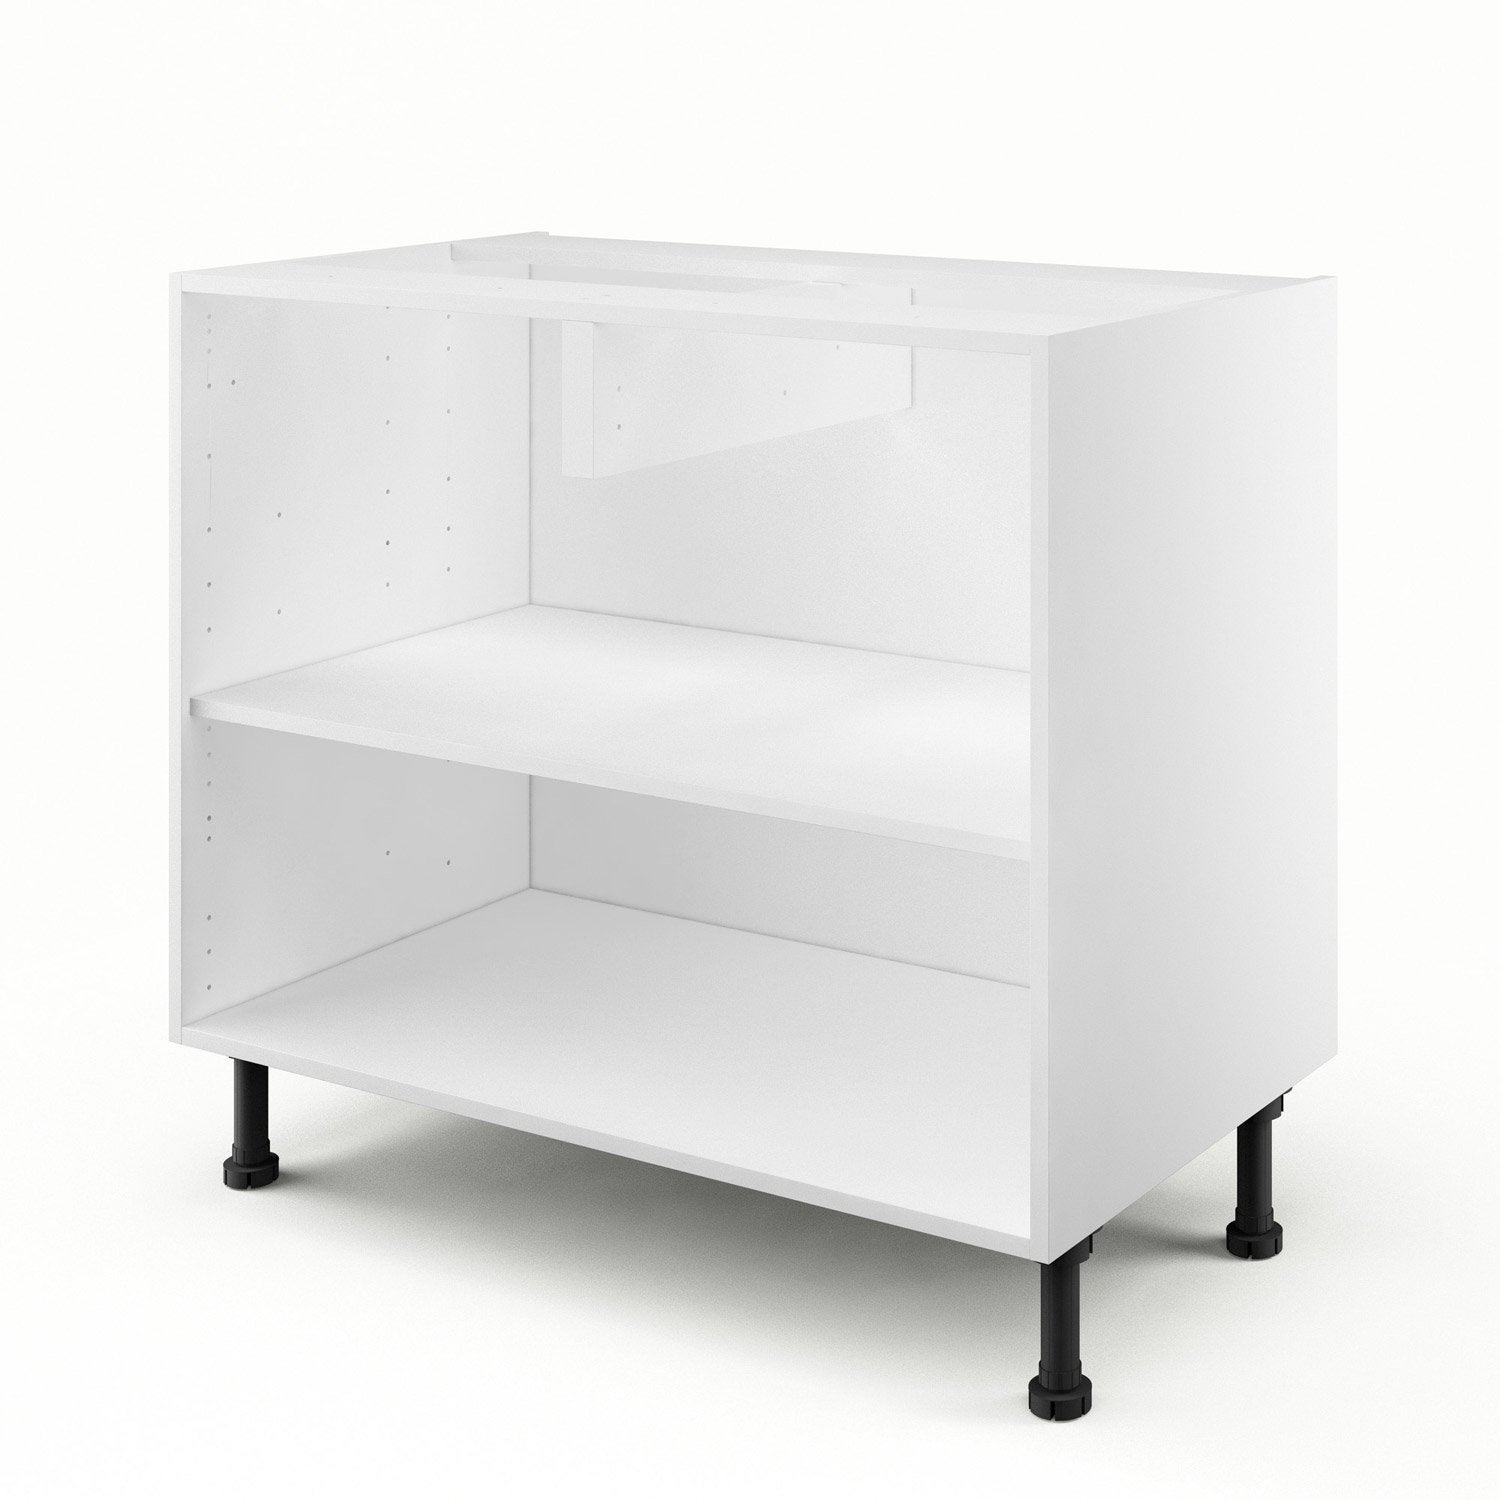 caisson de cuisine bas b90 delinia blanc x x p. Black Bedroom Furniture Sets. Home Design Ideas